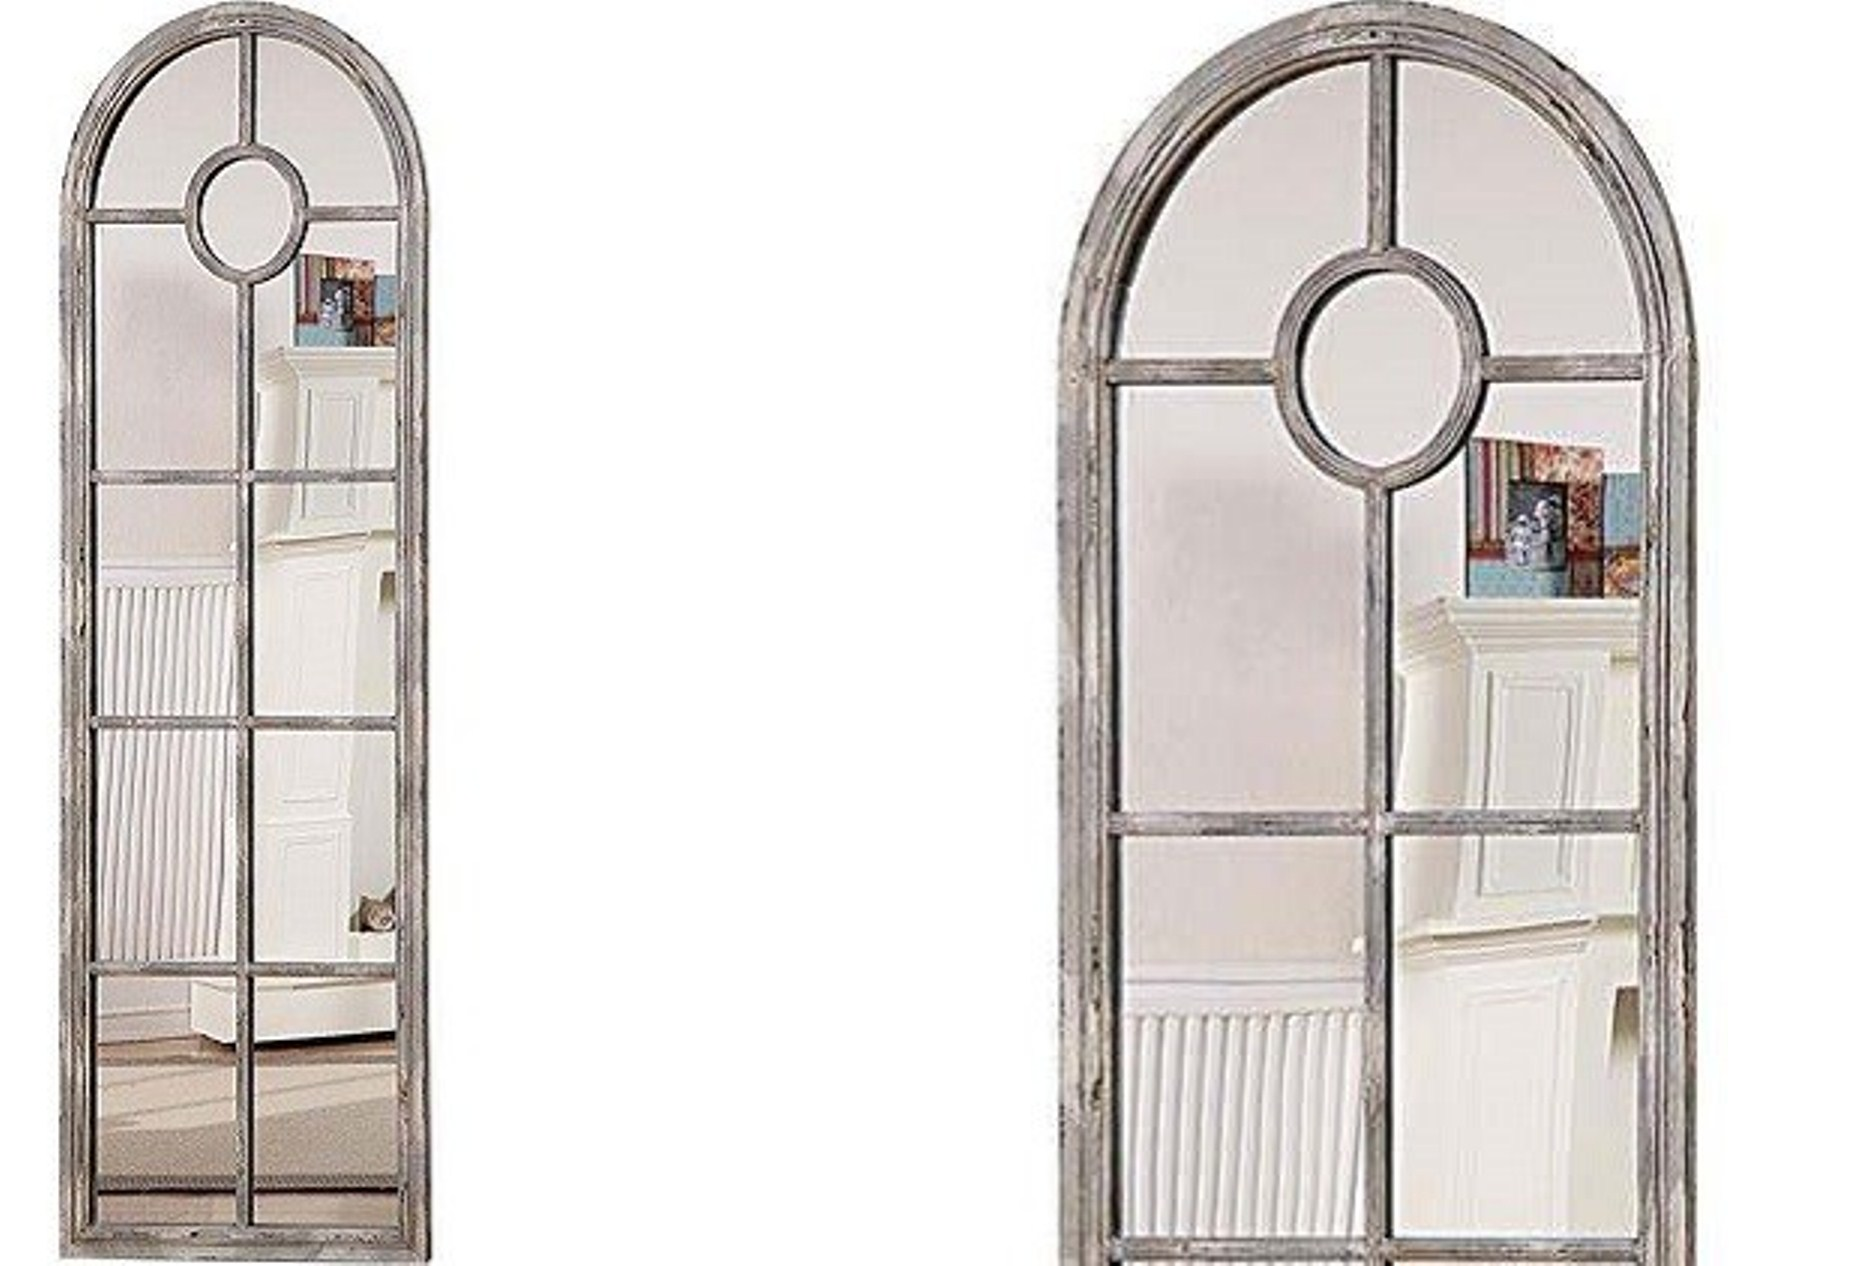 Window Pane Wall Mirror | Windowpane Mirror | Decorative Full Length Mirror